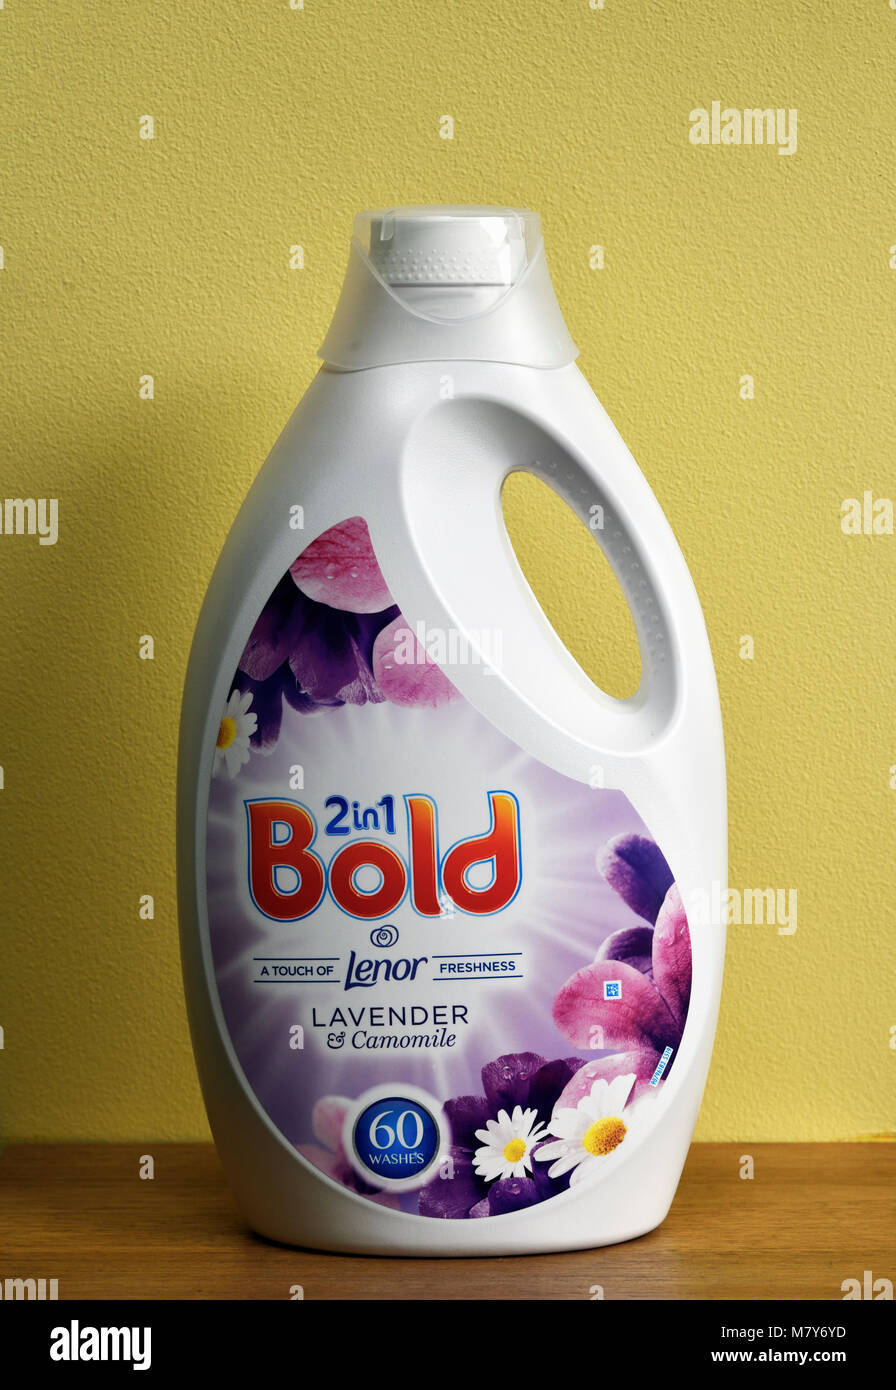 Plastic container of Procter and Gamble 2 in 1 Bold biological laundry detergent. - Stock Image